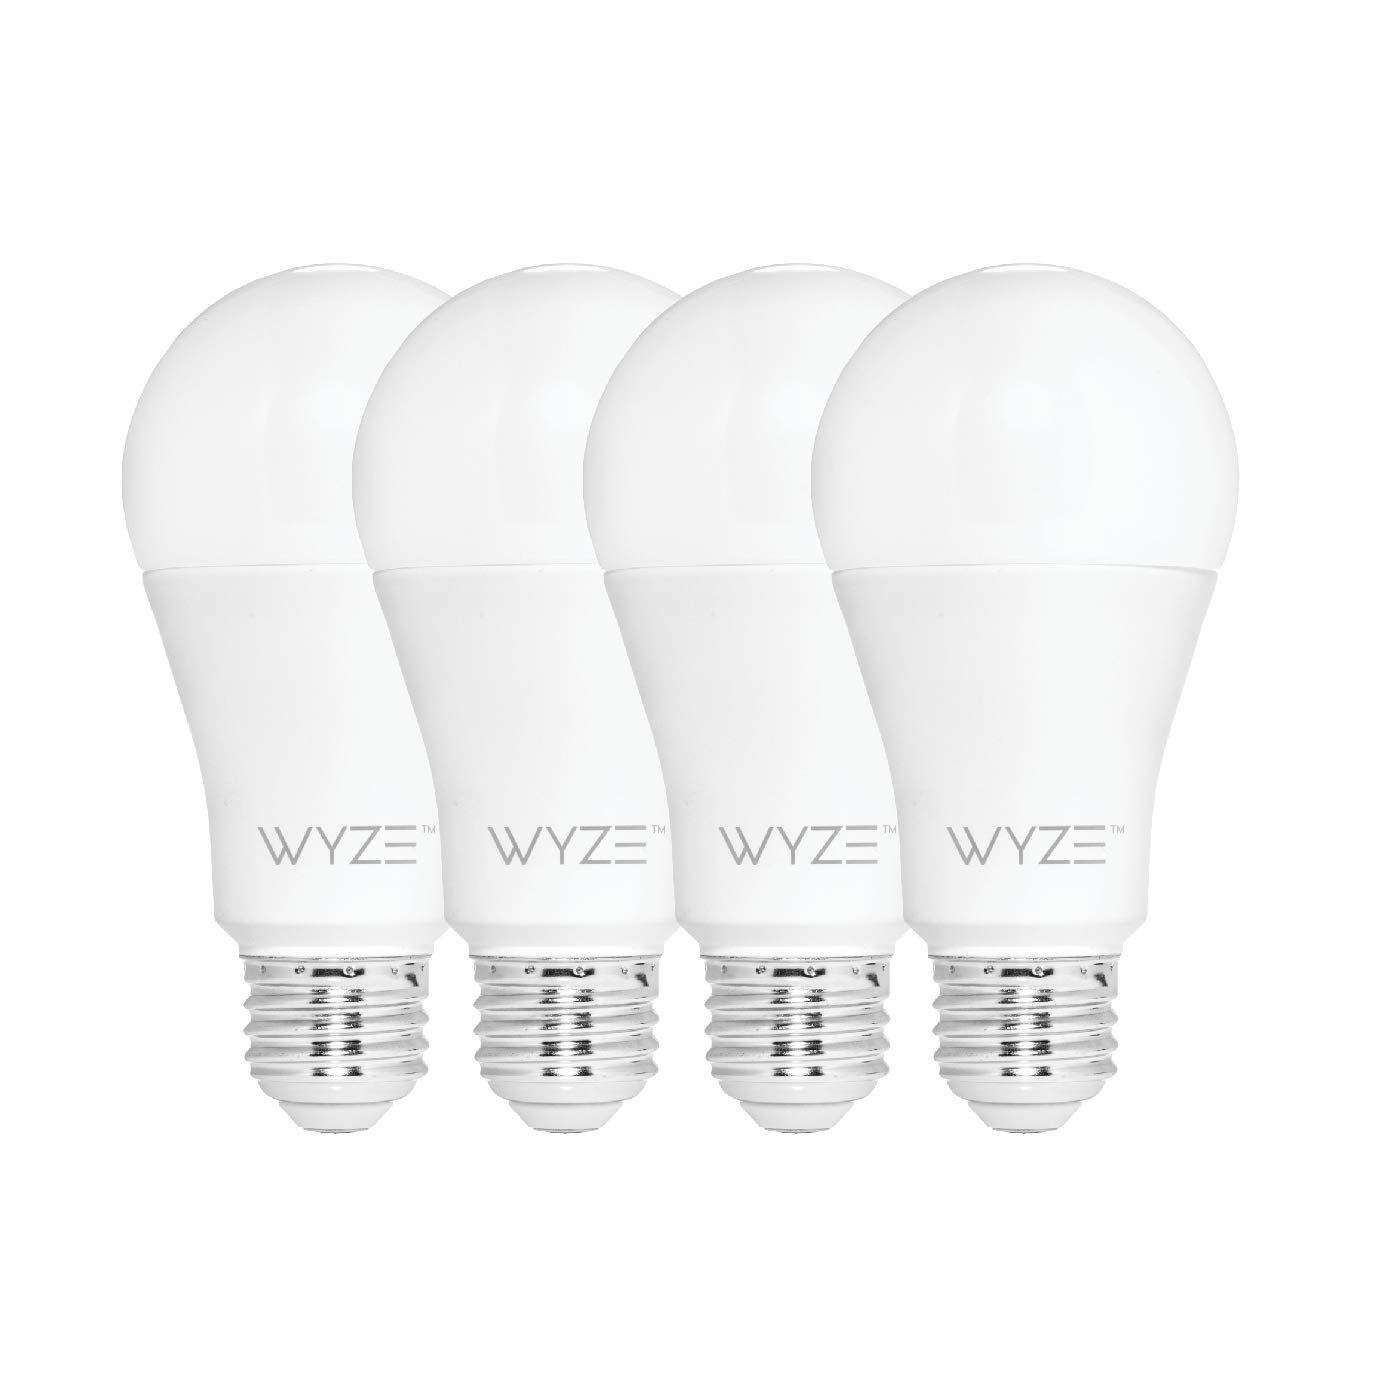 Wyze Bulb 800 Lumen A19 LED Smart Home Light Bulb, Adjustable white  temperature and brightness, works with Alexa and the Google Assistant, No  Hub